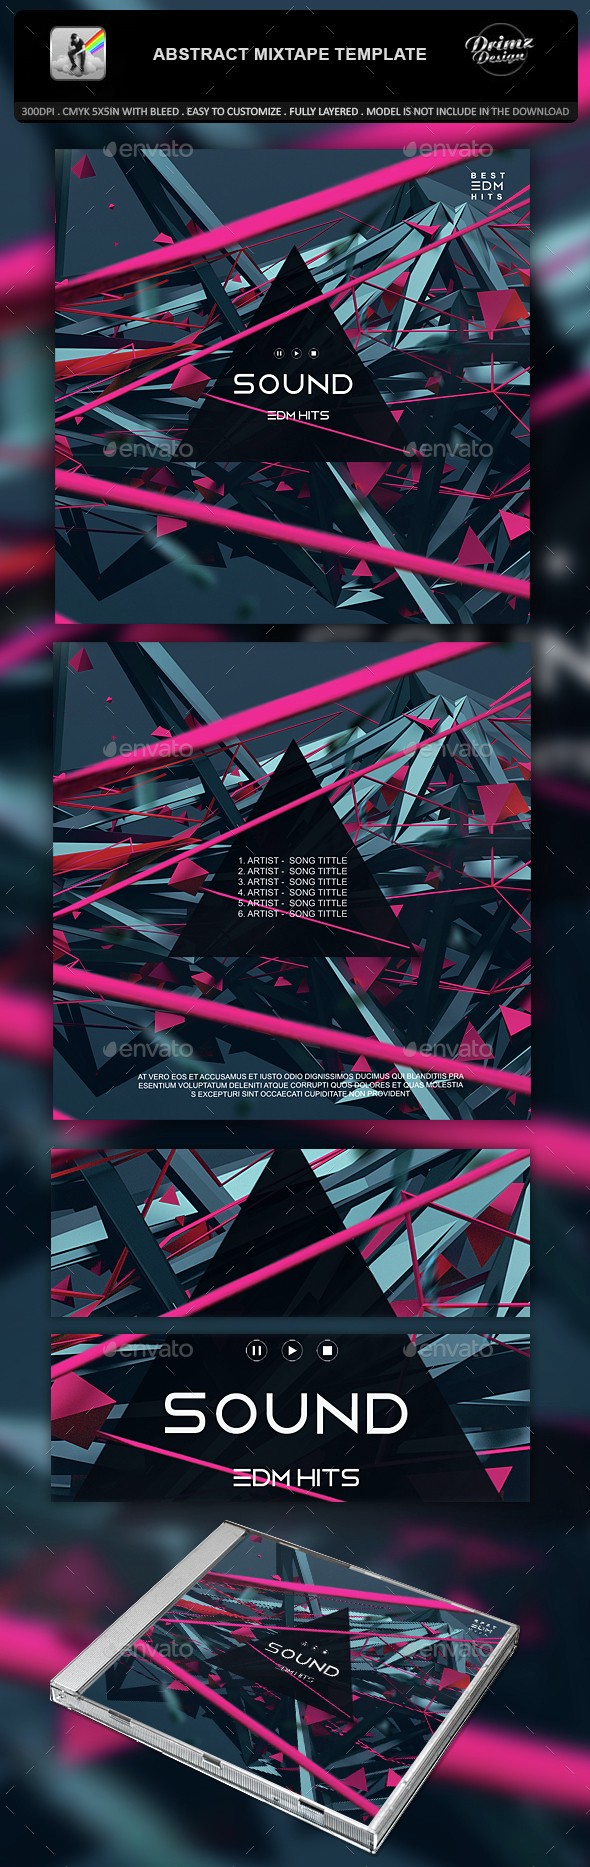 Abstract Mixtape Template - CD & DVD Artwork Print Templates